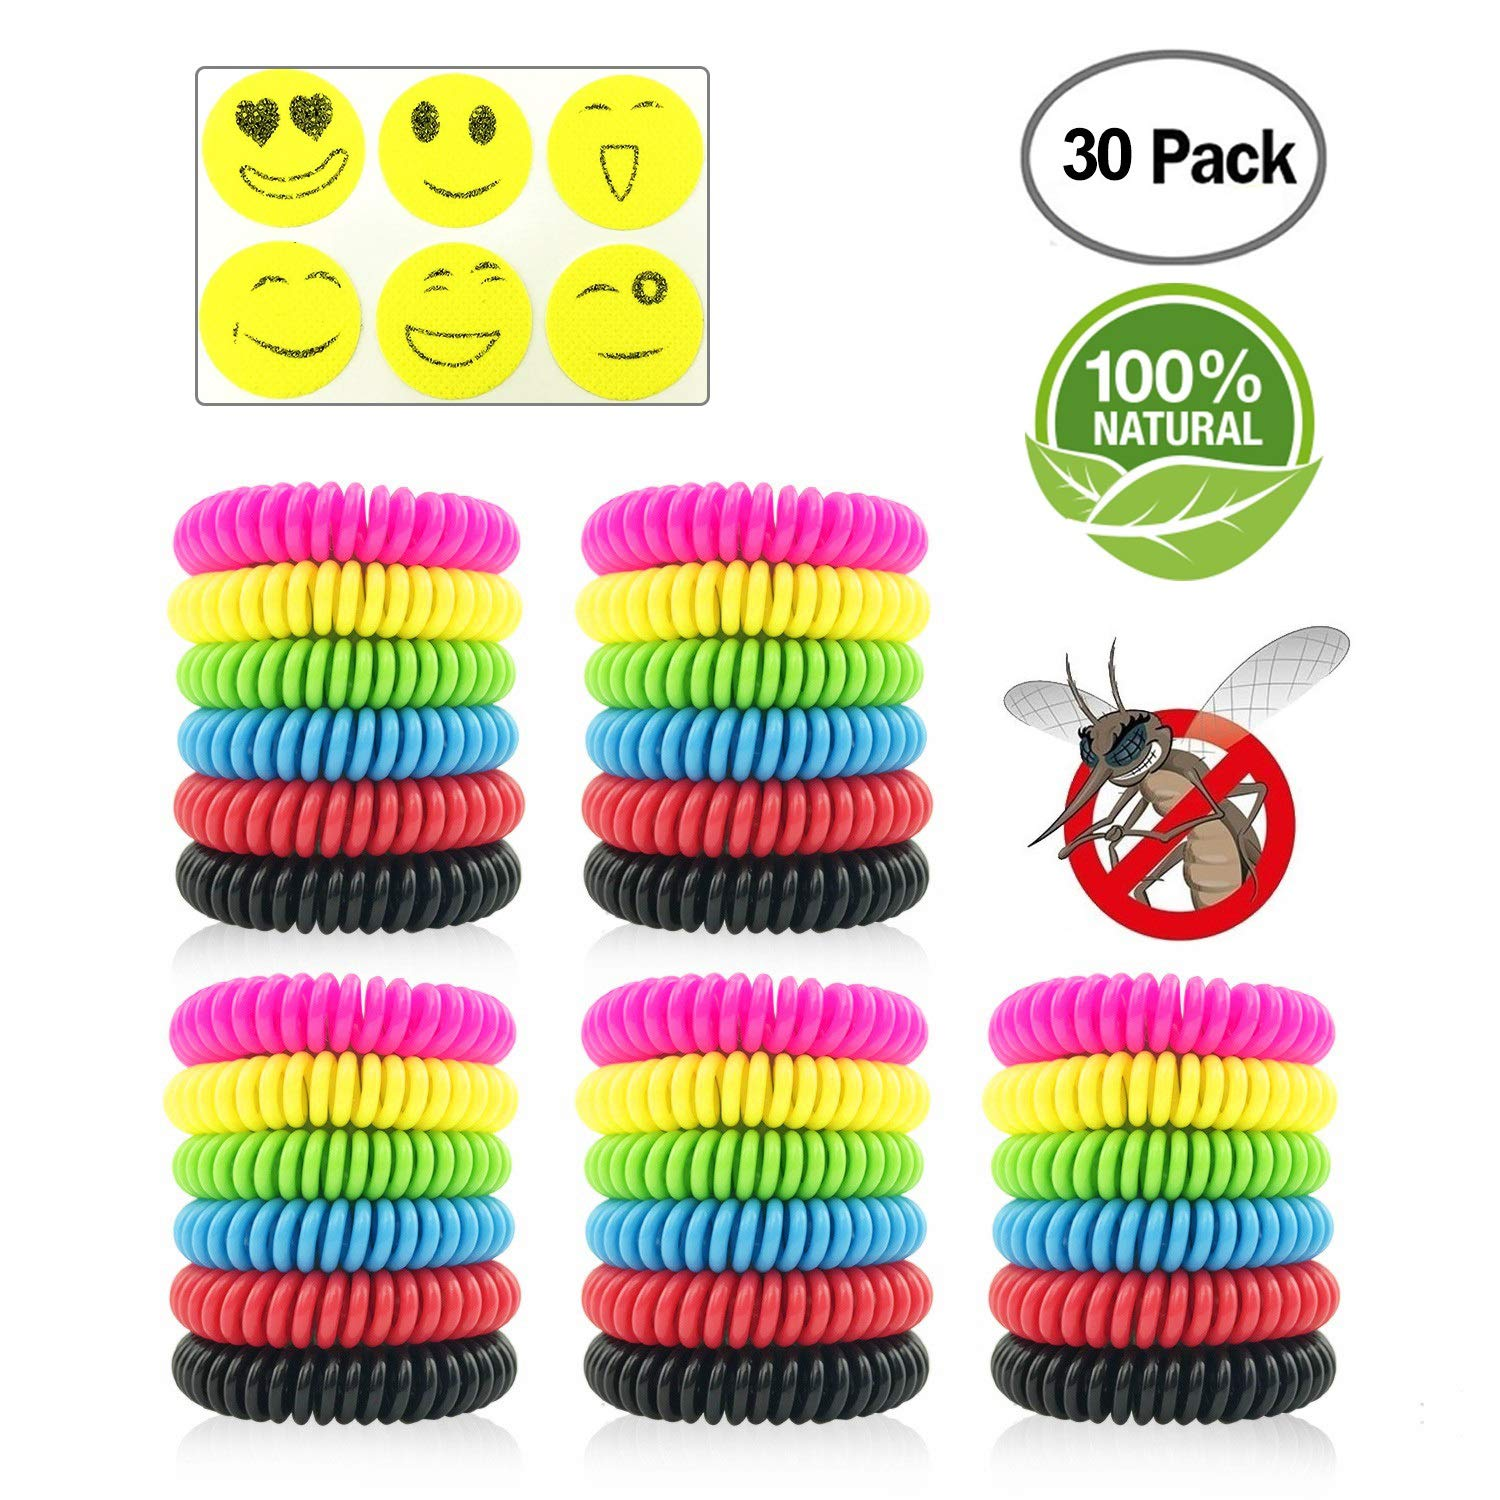 Sumpo Mosquito Repellent Bracelets 30 Pack, DEET-Free & Non-Toxic Waterproof Wristbands, Pest Bug Control Bands for Kids and Adults Outdoor Camping Fishing Hiking by Sumpo